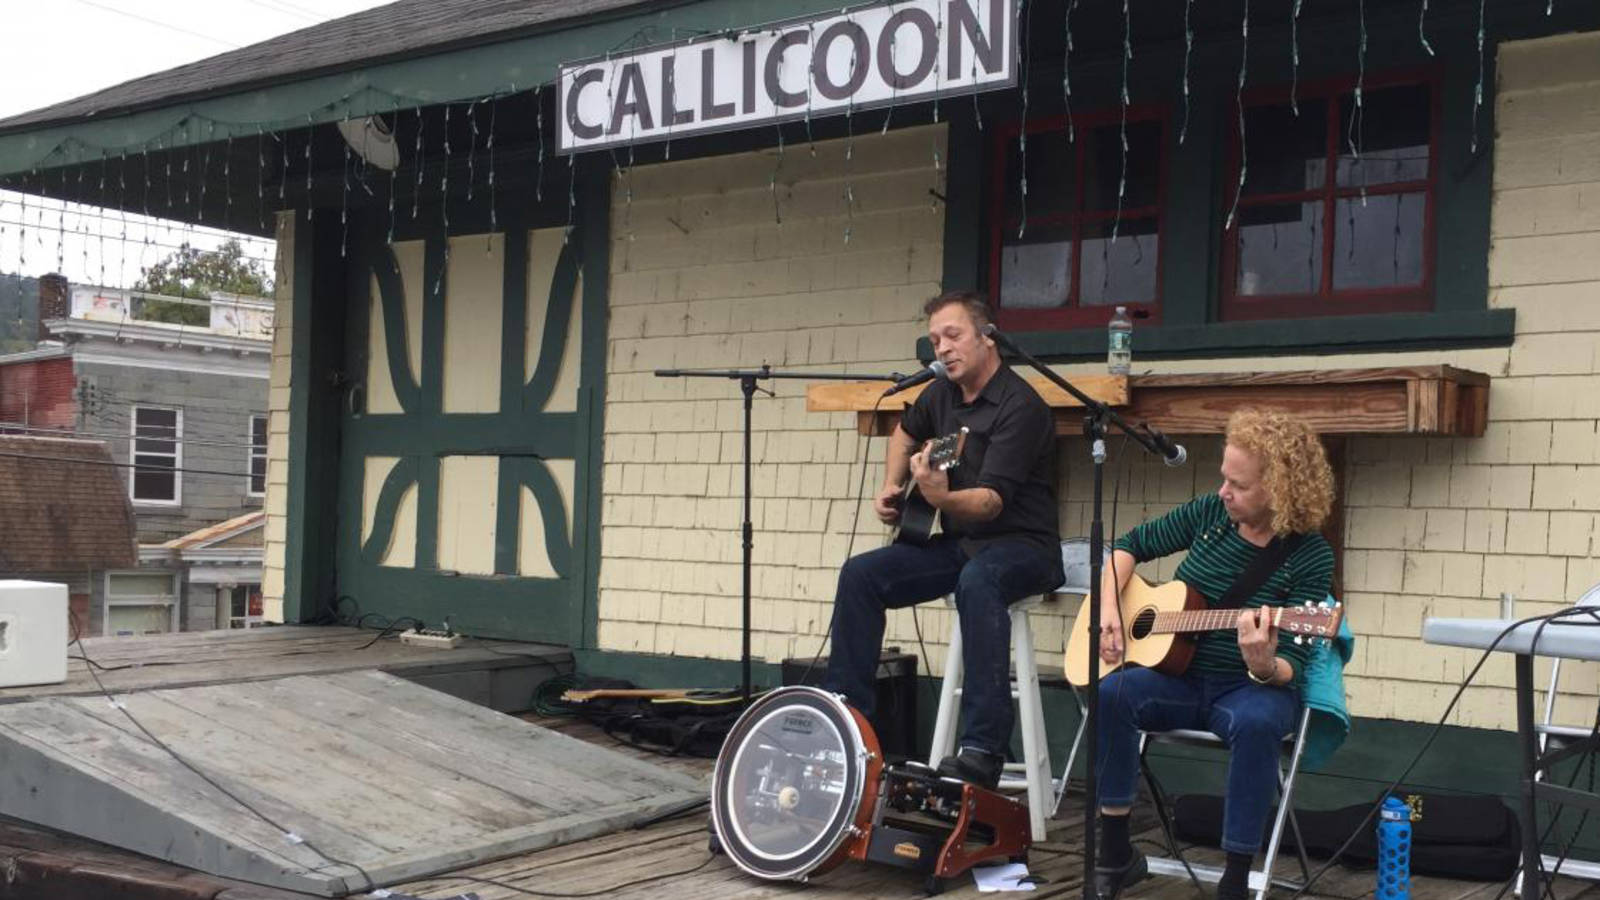 <p>Central New York Railroad has graciously allowed use of the Callicoon Depot's former loading dock as a stage for popular community events. Musicians Brewster Smith and Elizabeth Rose perform.</p>